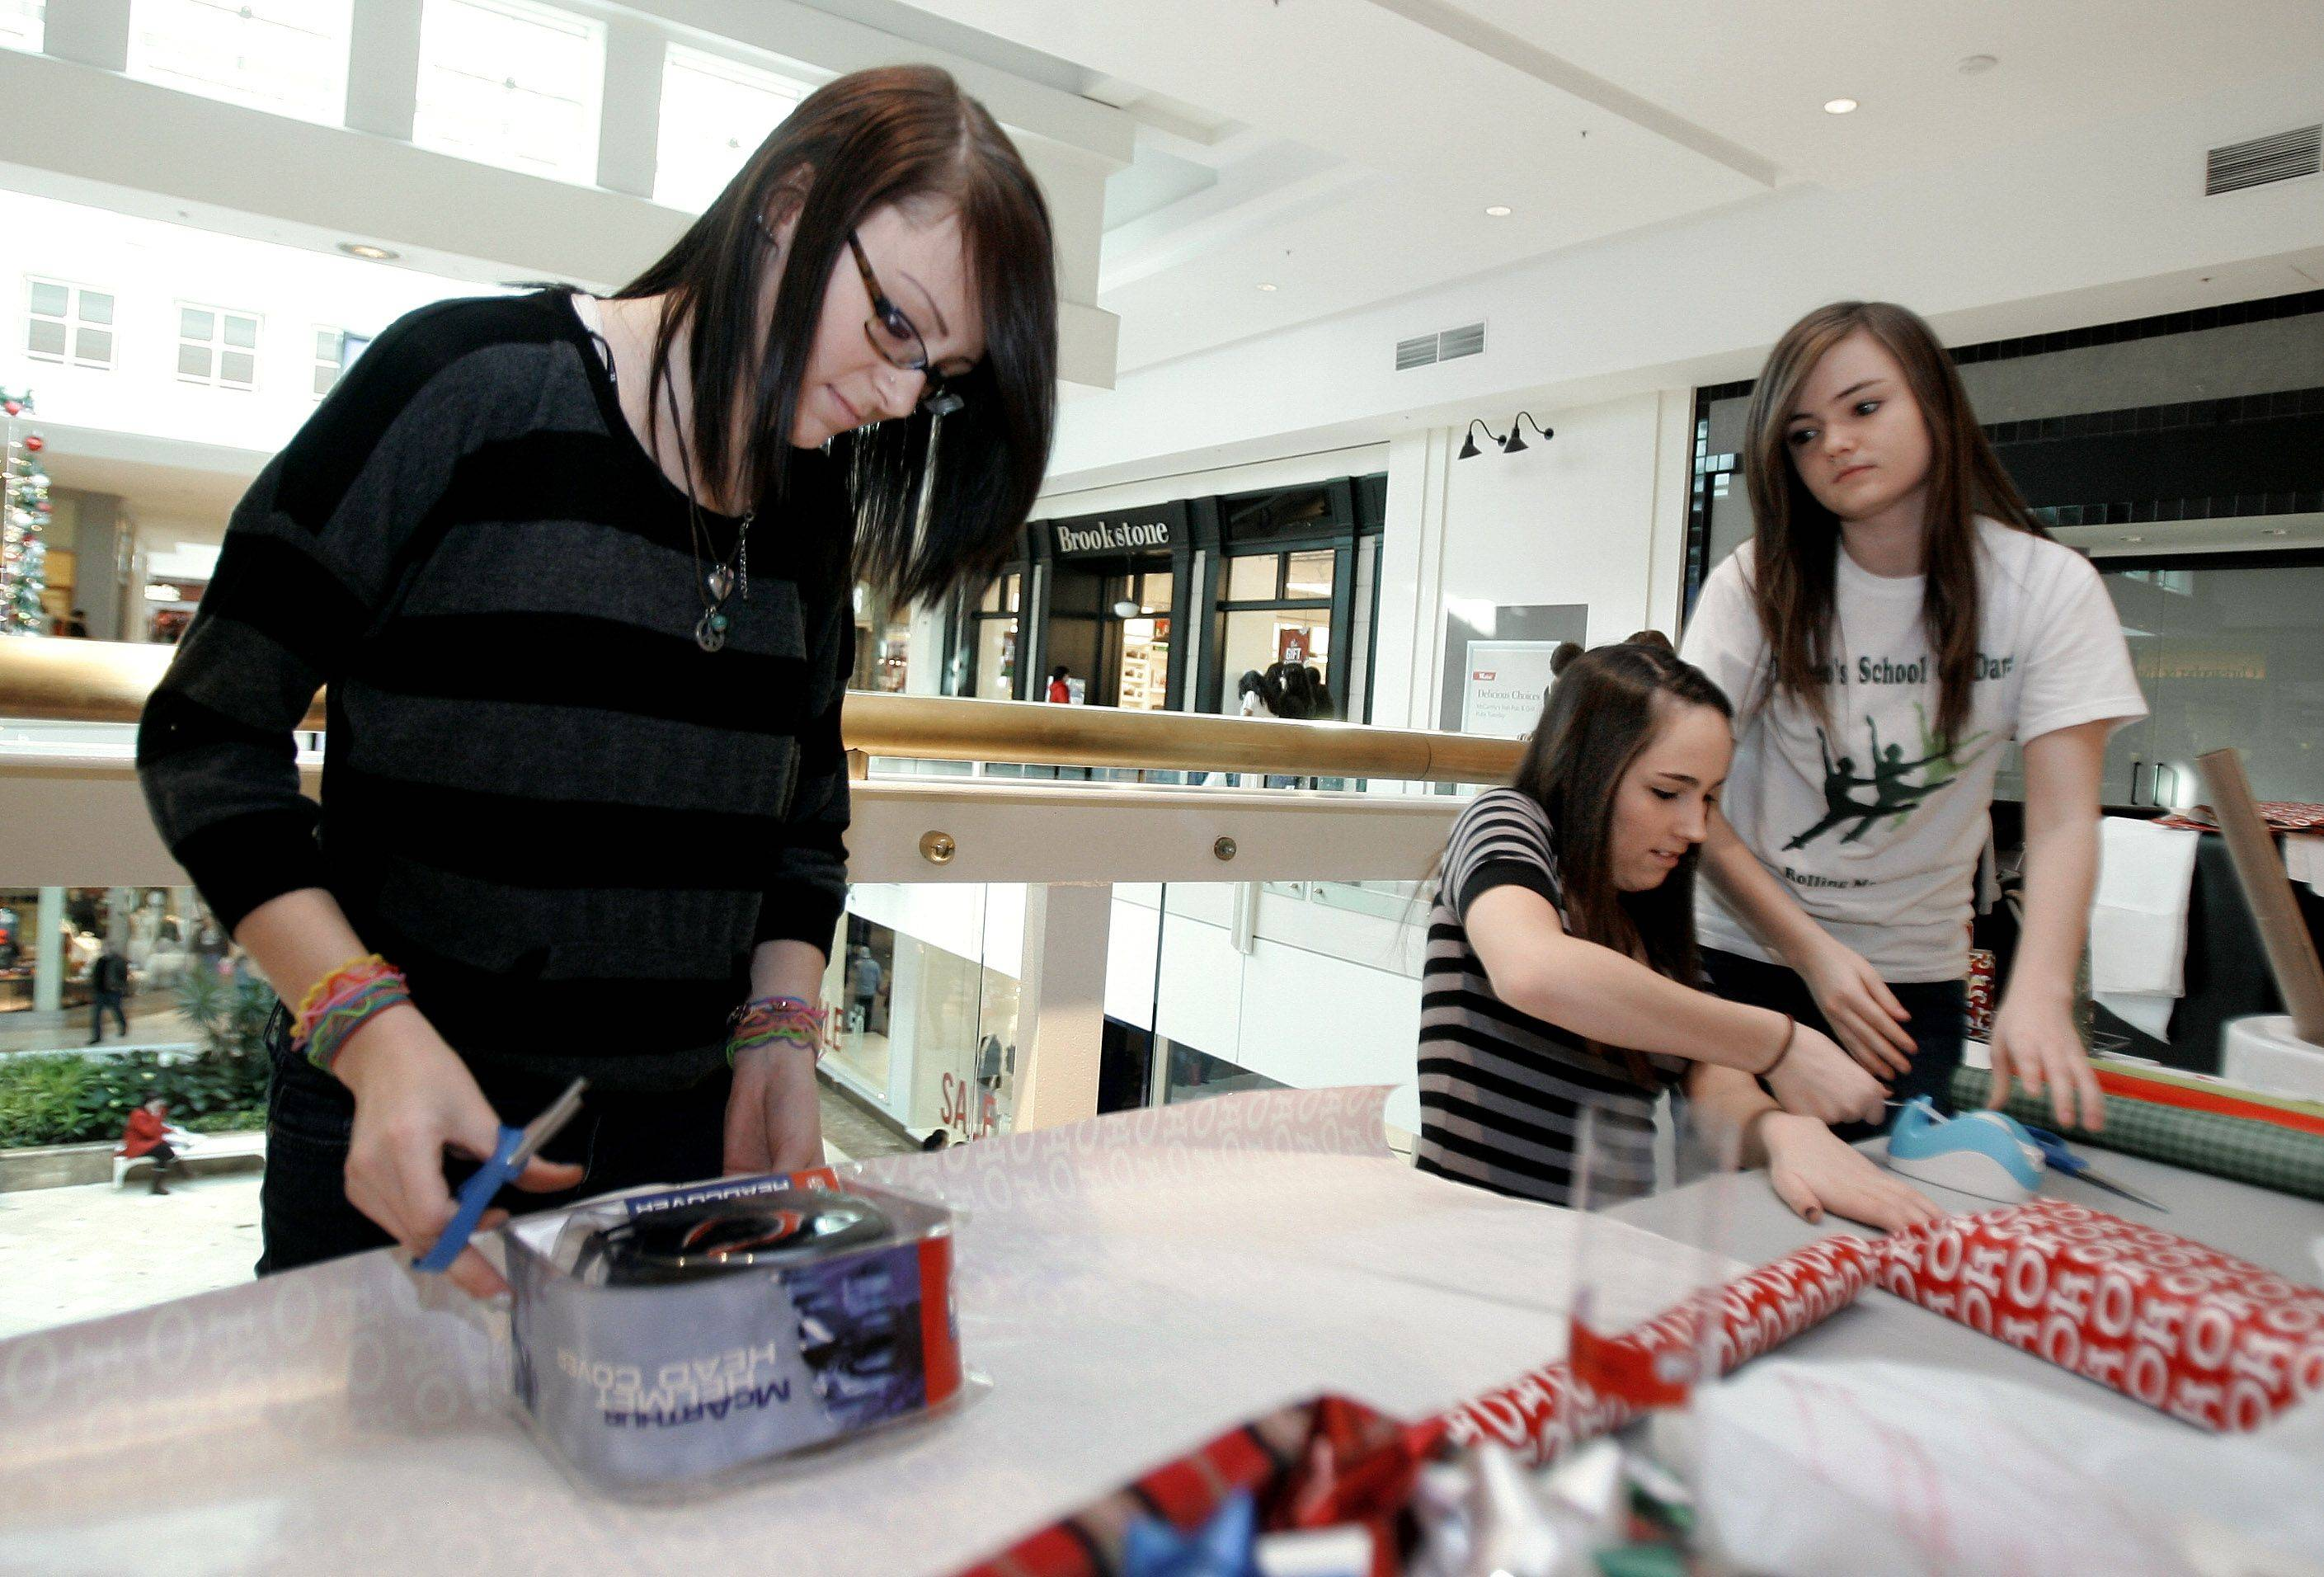 Tina Jordahl, 15, left, Kayla Suchomski, 15, and Caitlin O'Keefe, 16 all from Hoffman Estates, volunteer to wrap presents to raise money for the National Inclusion Project Wednesday at Westfield Hawthorn Shopping Center in Vernon Hills. The National Inclusion Project serves to bridge the gap that exists between young people with disabilities and the world around them.